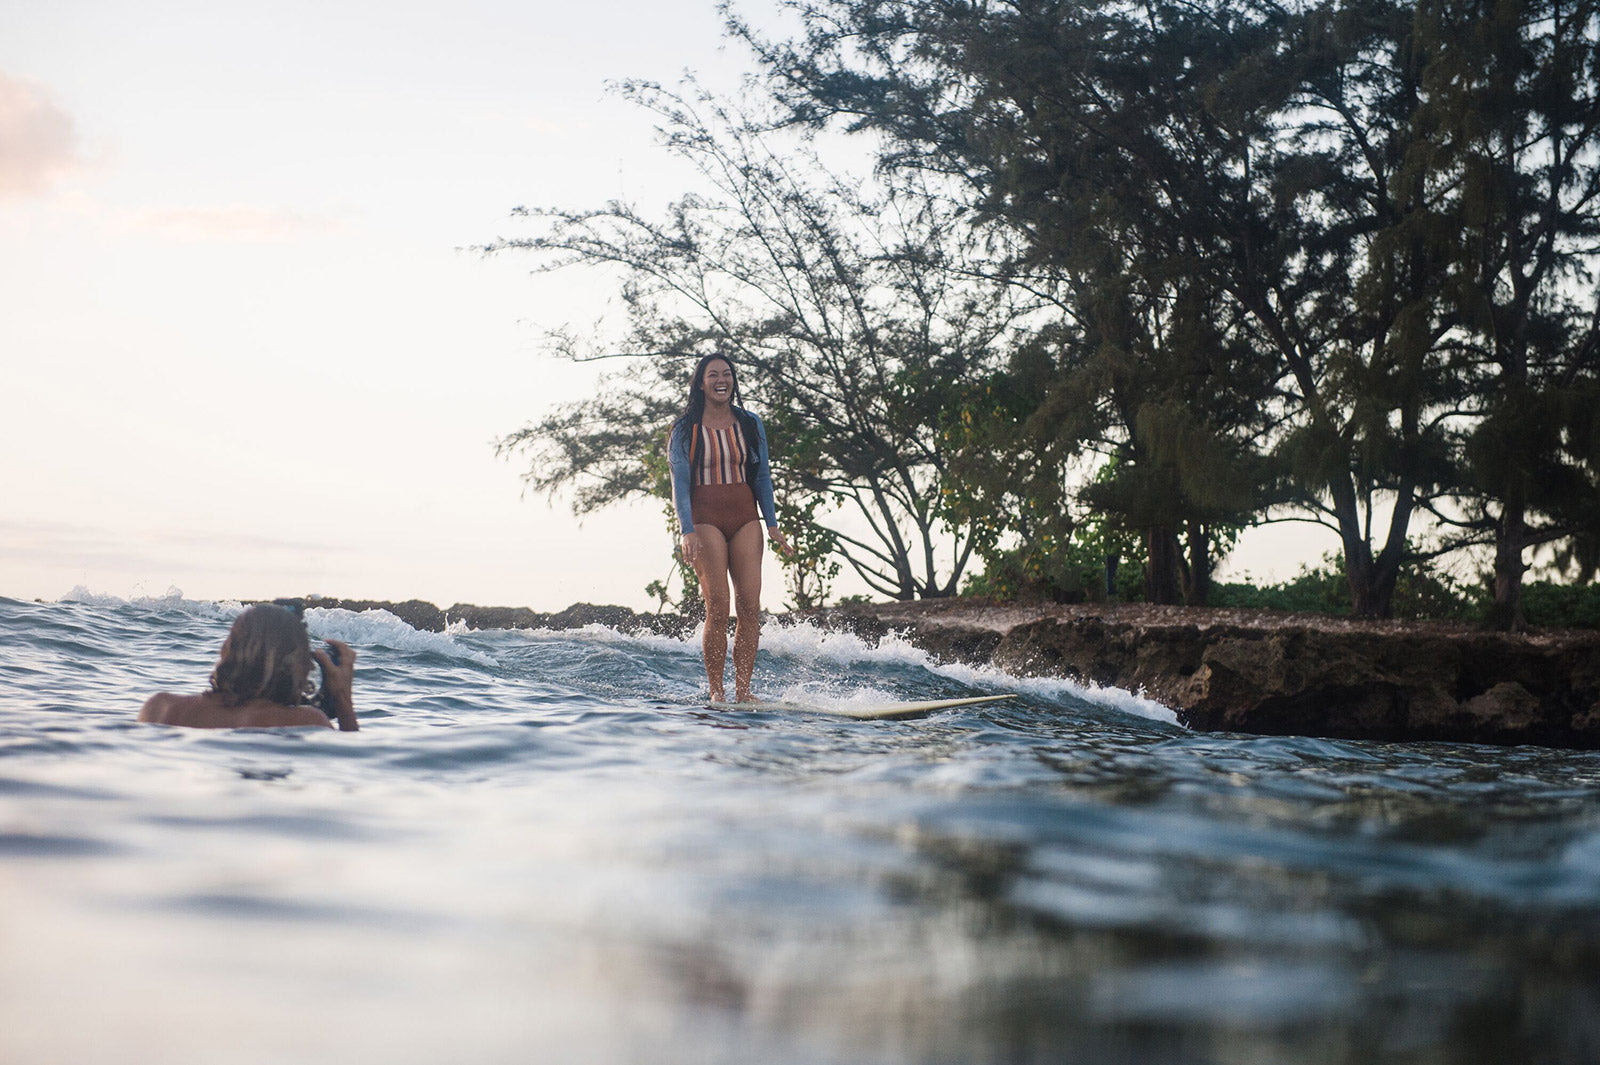 Keoki Saguibo and Rosie during a sunset surf session.